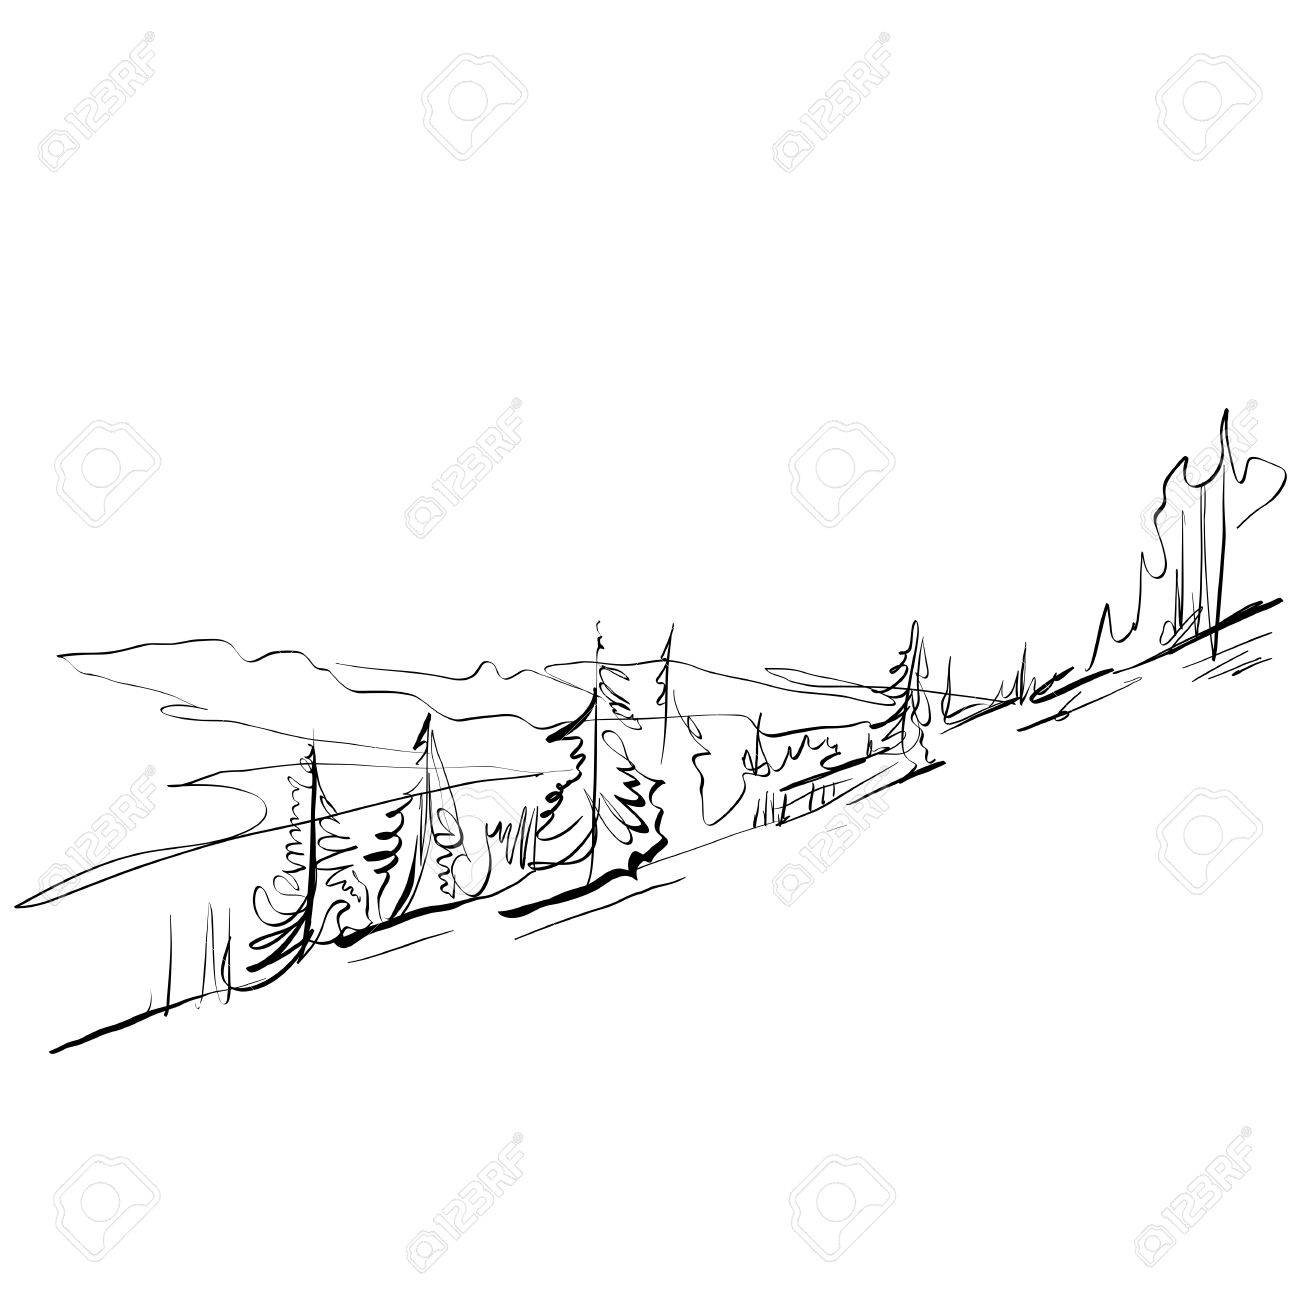 1300x1300 Black And White Hand Drawn Landscape, Illustrated Mountains